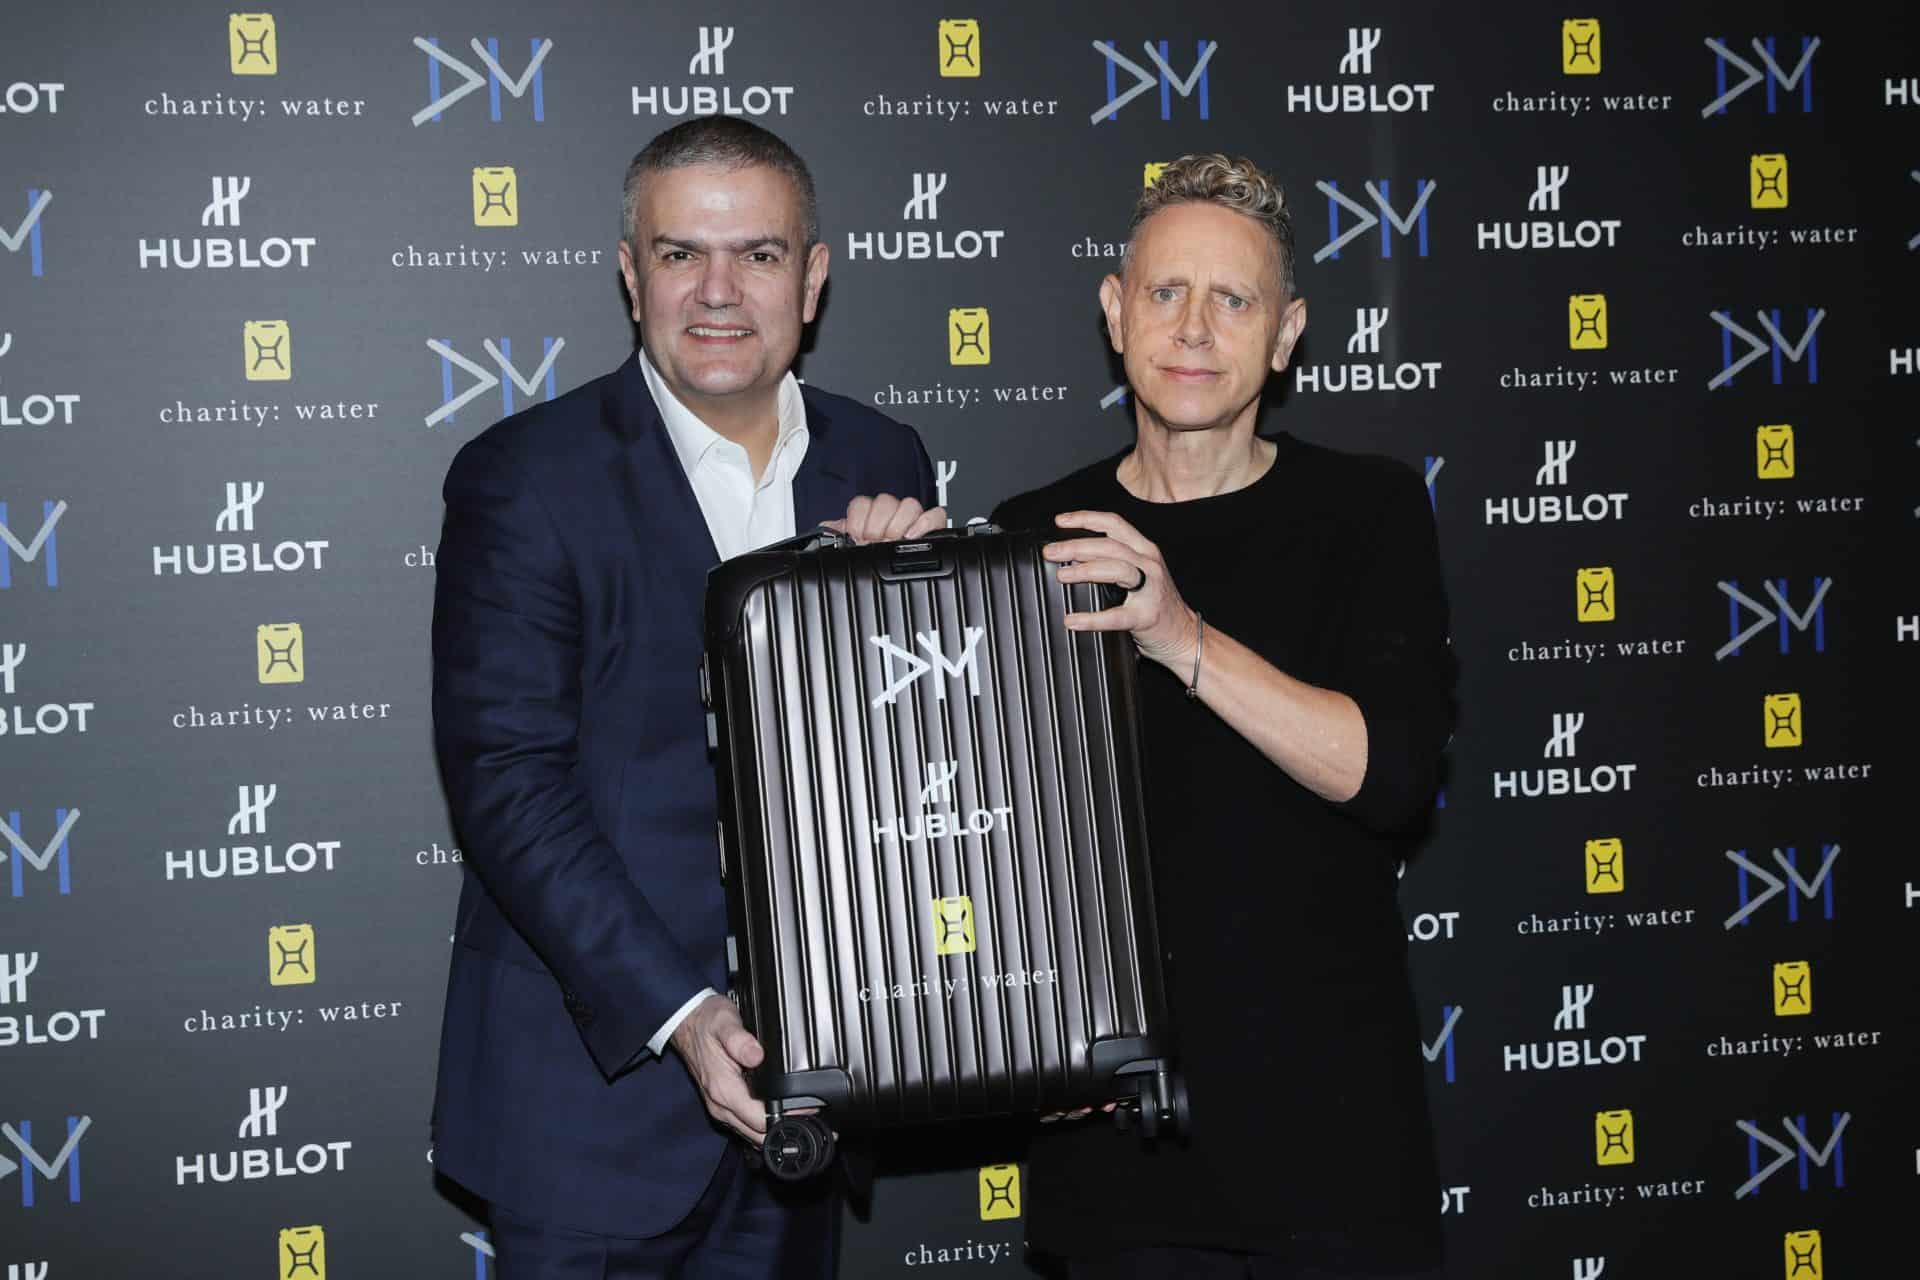 Ricardo Guadalupe und Martin Gore Big Bang Depeche Mode The Singles Limited Edition in einem Rimowa Koffer